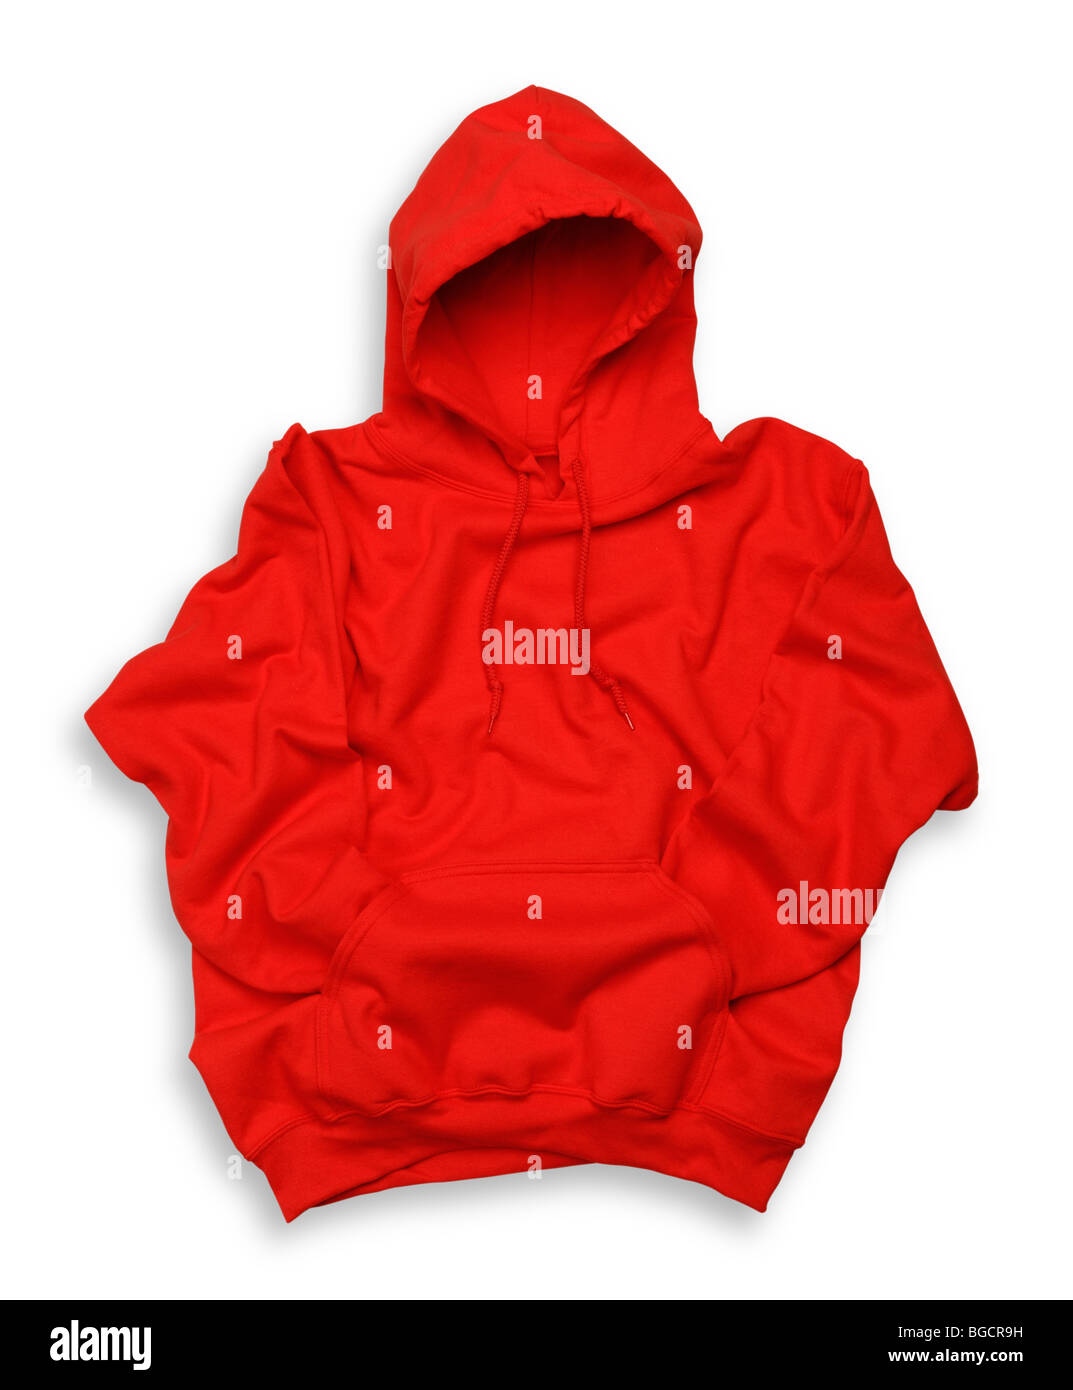 Red hooded top - Stock Image